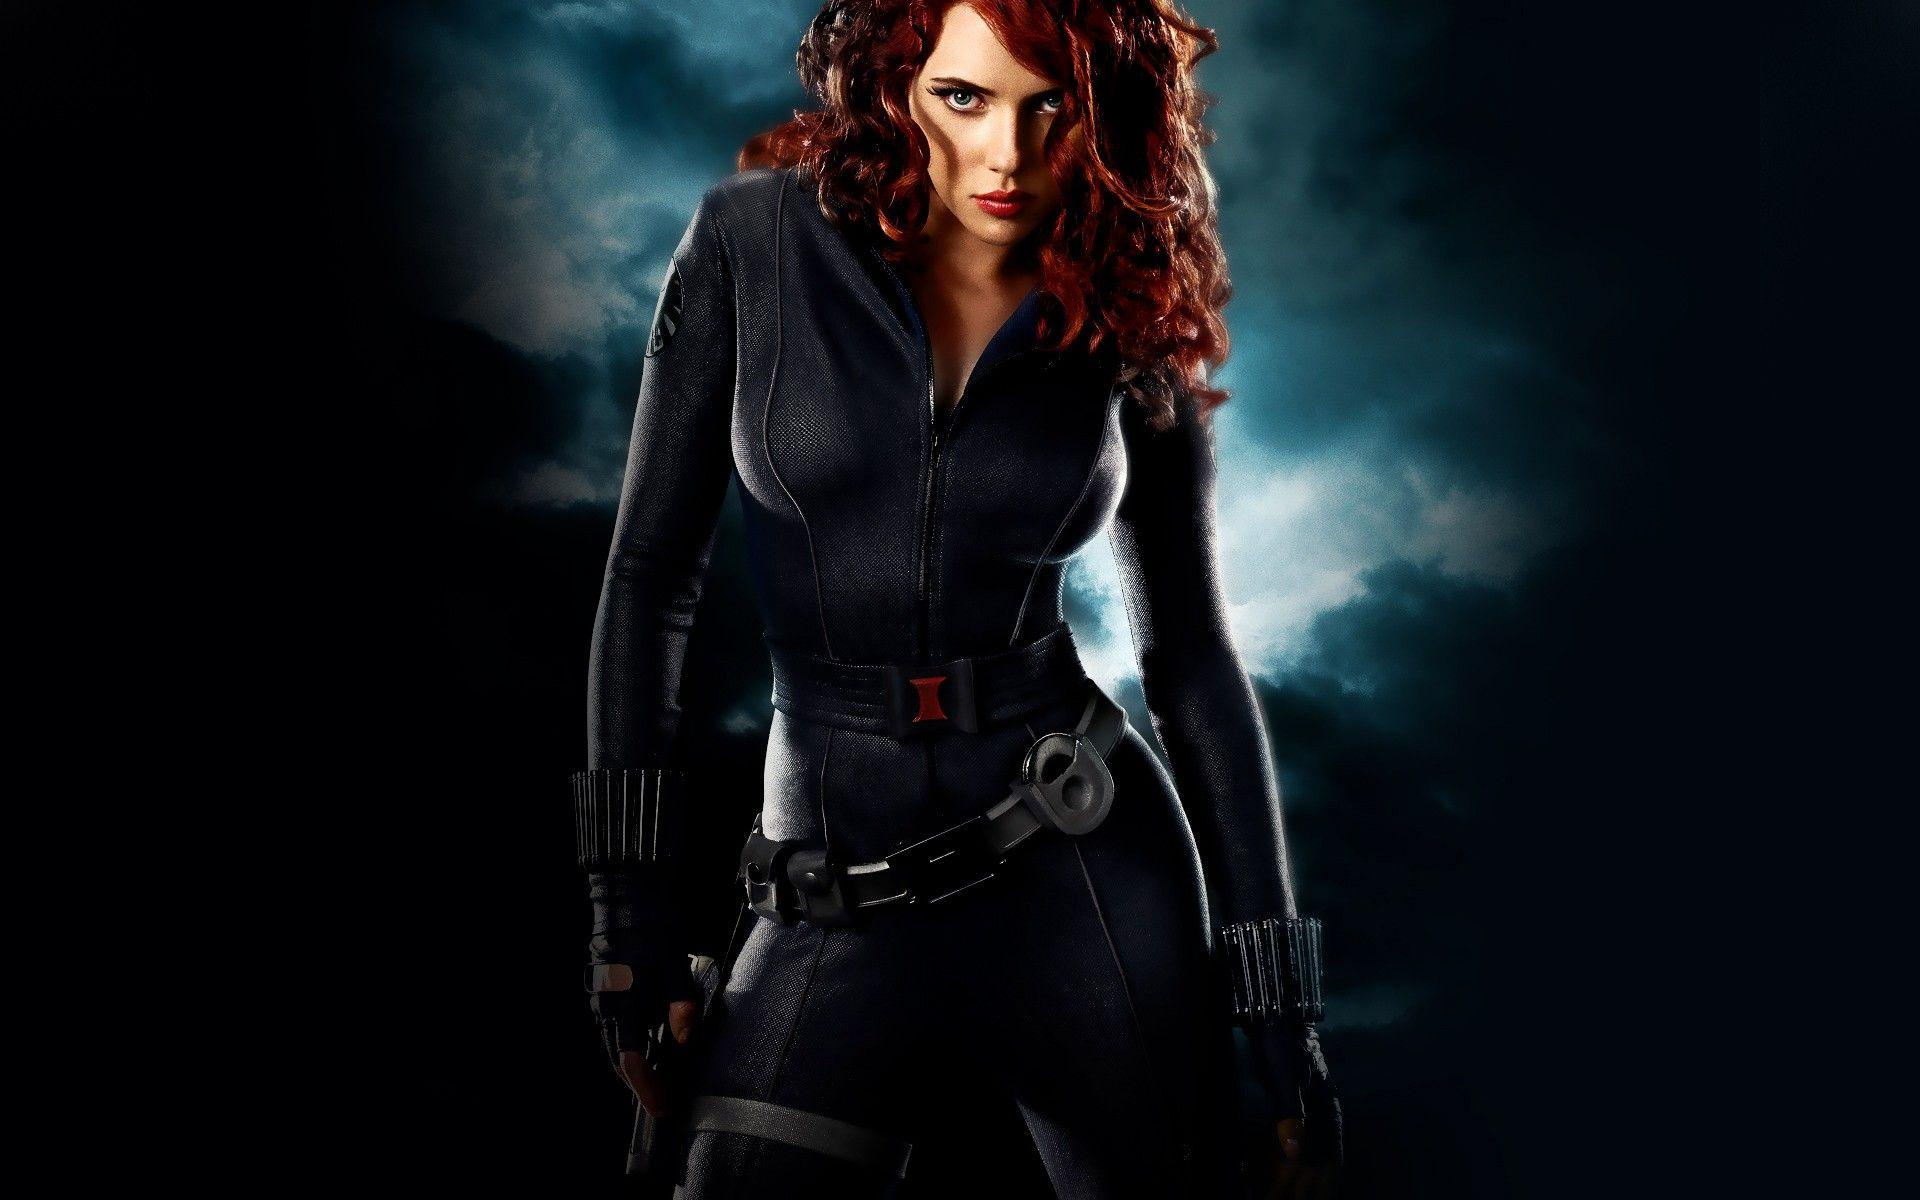 Scarlett johansson black widow wallpaper - photo#6